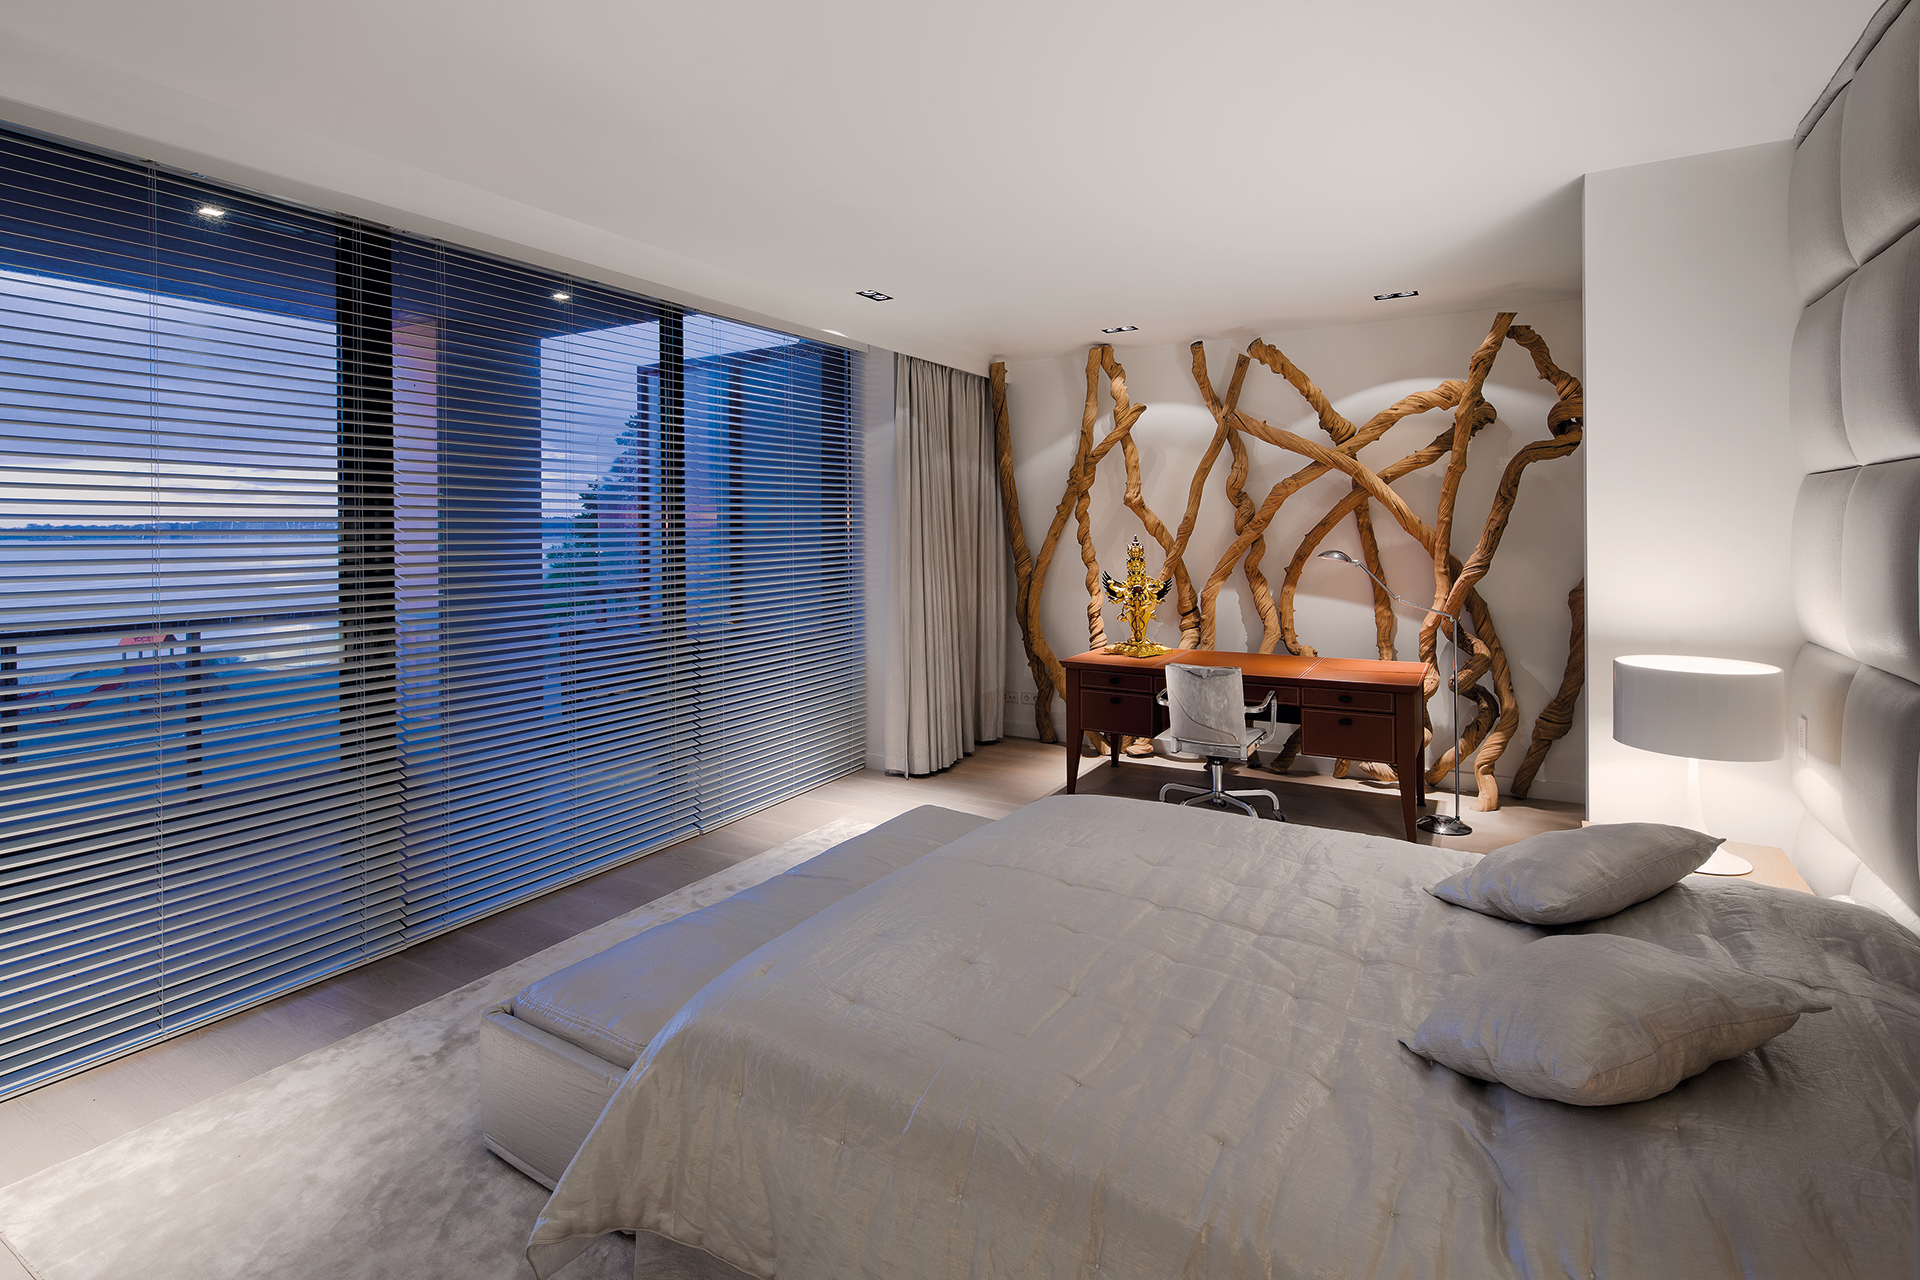 Master bedroom overlooking the observation deck and beach, gnarled driftwood adorns the back wall which seats a work area with desk.